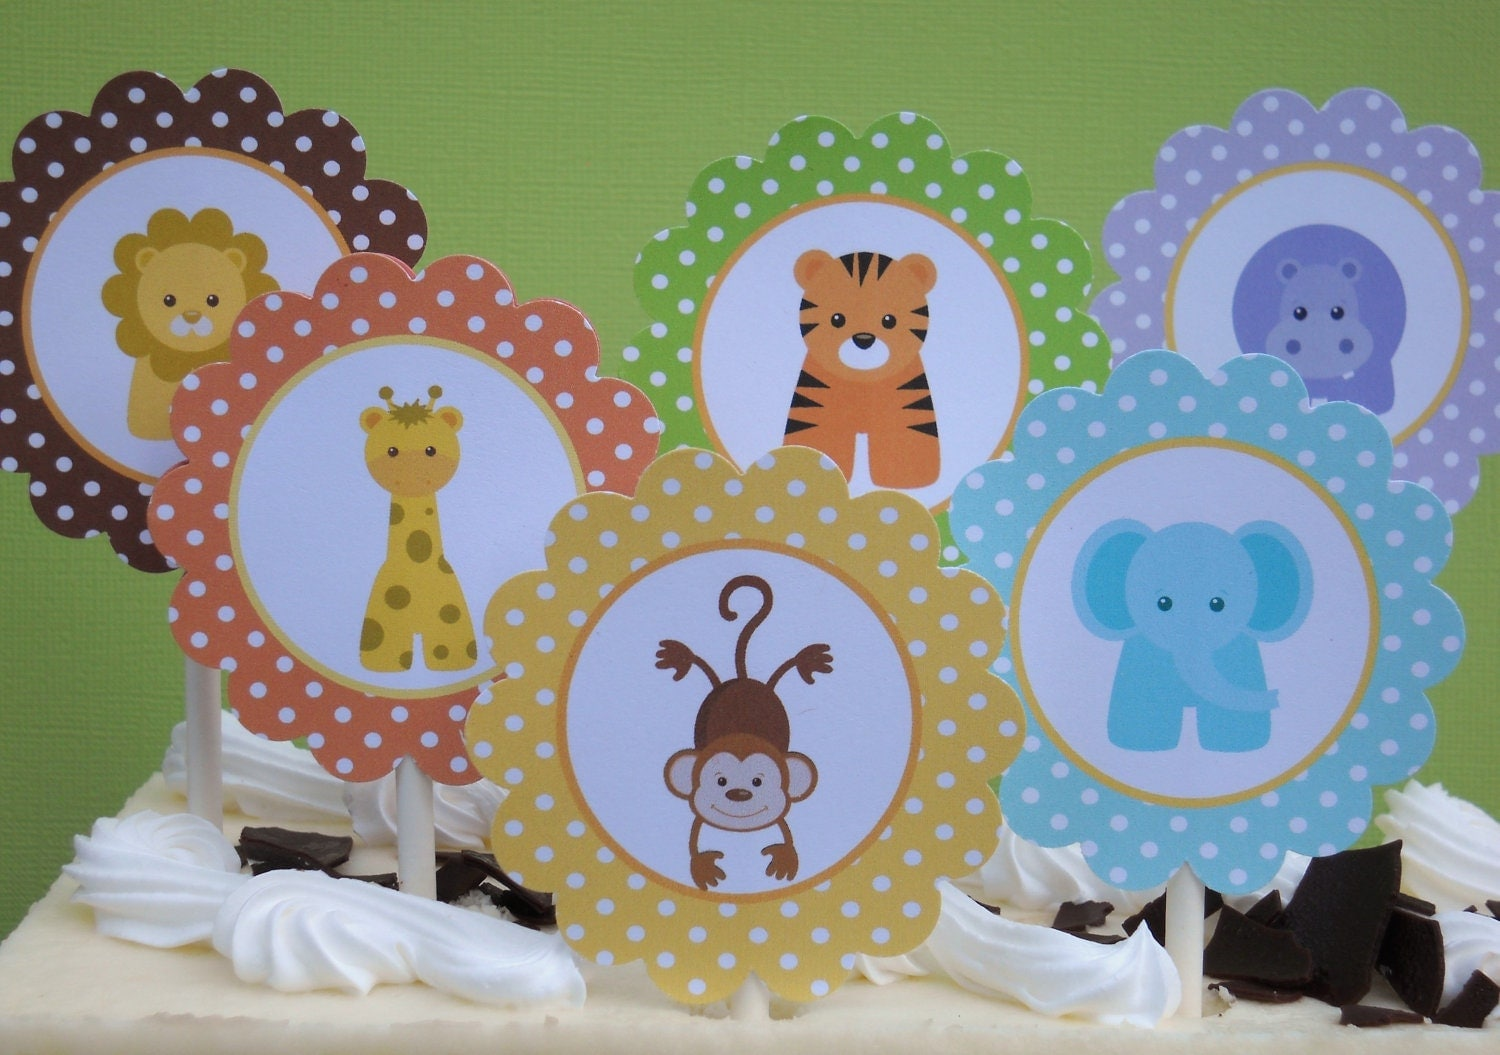 Zoo animal baby shower decorations best baby decoration for Animal print baby shower decoration ideas